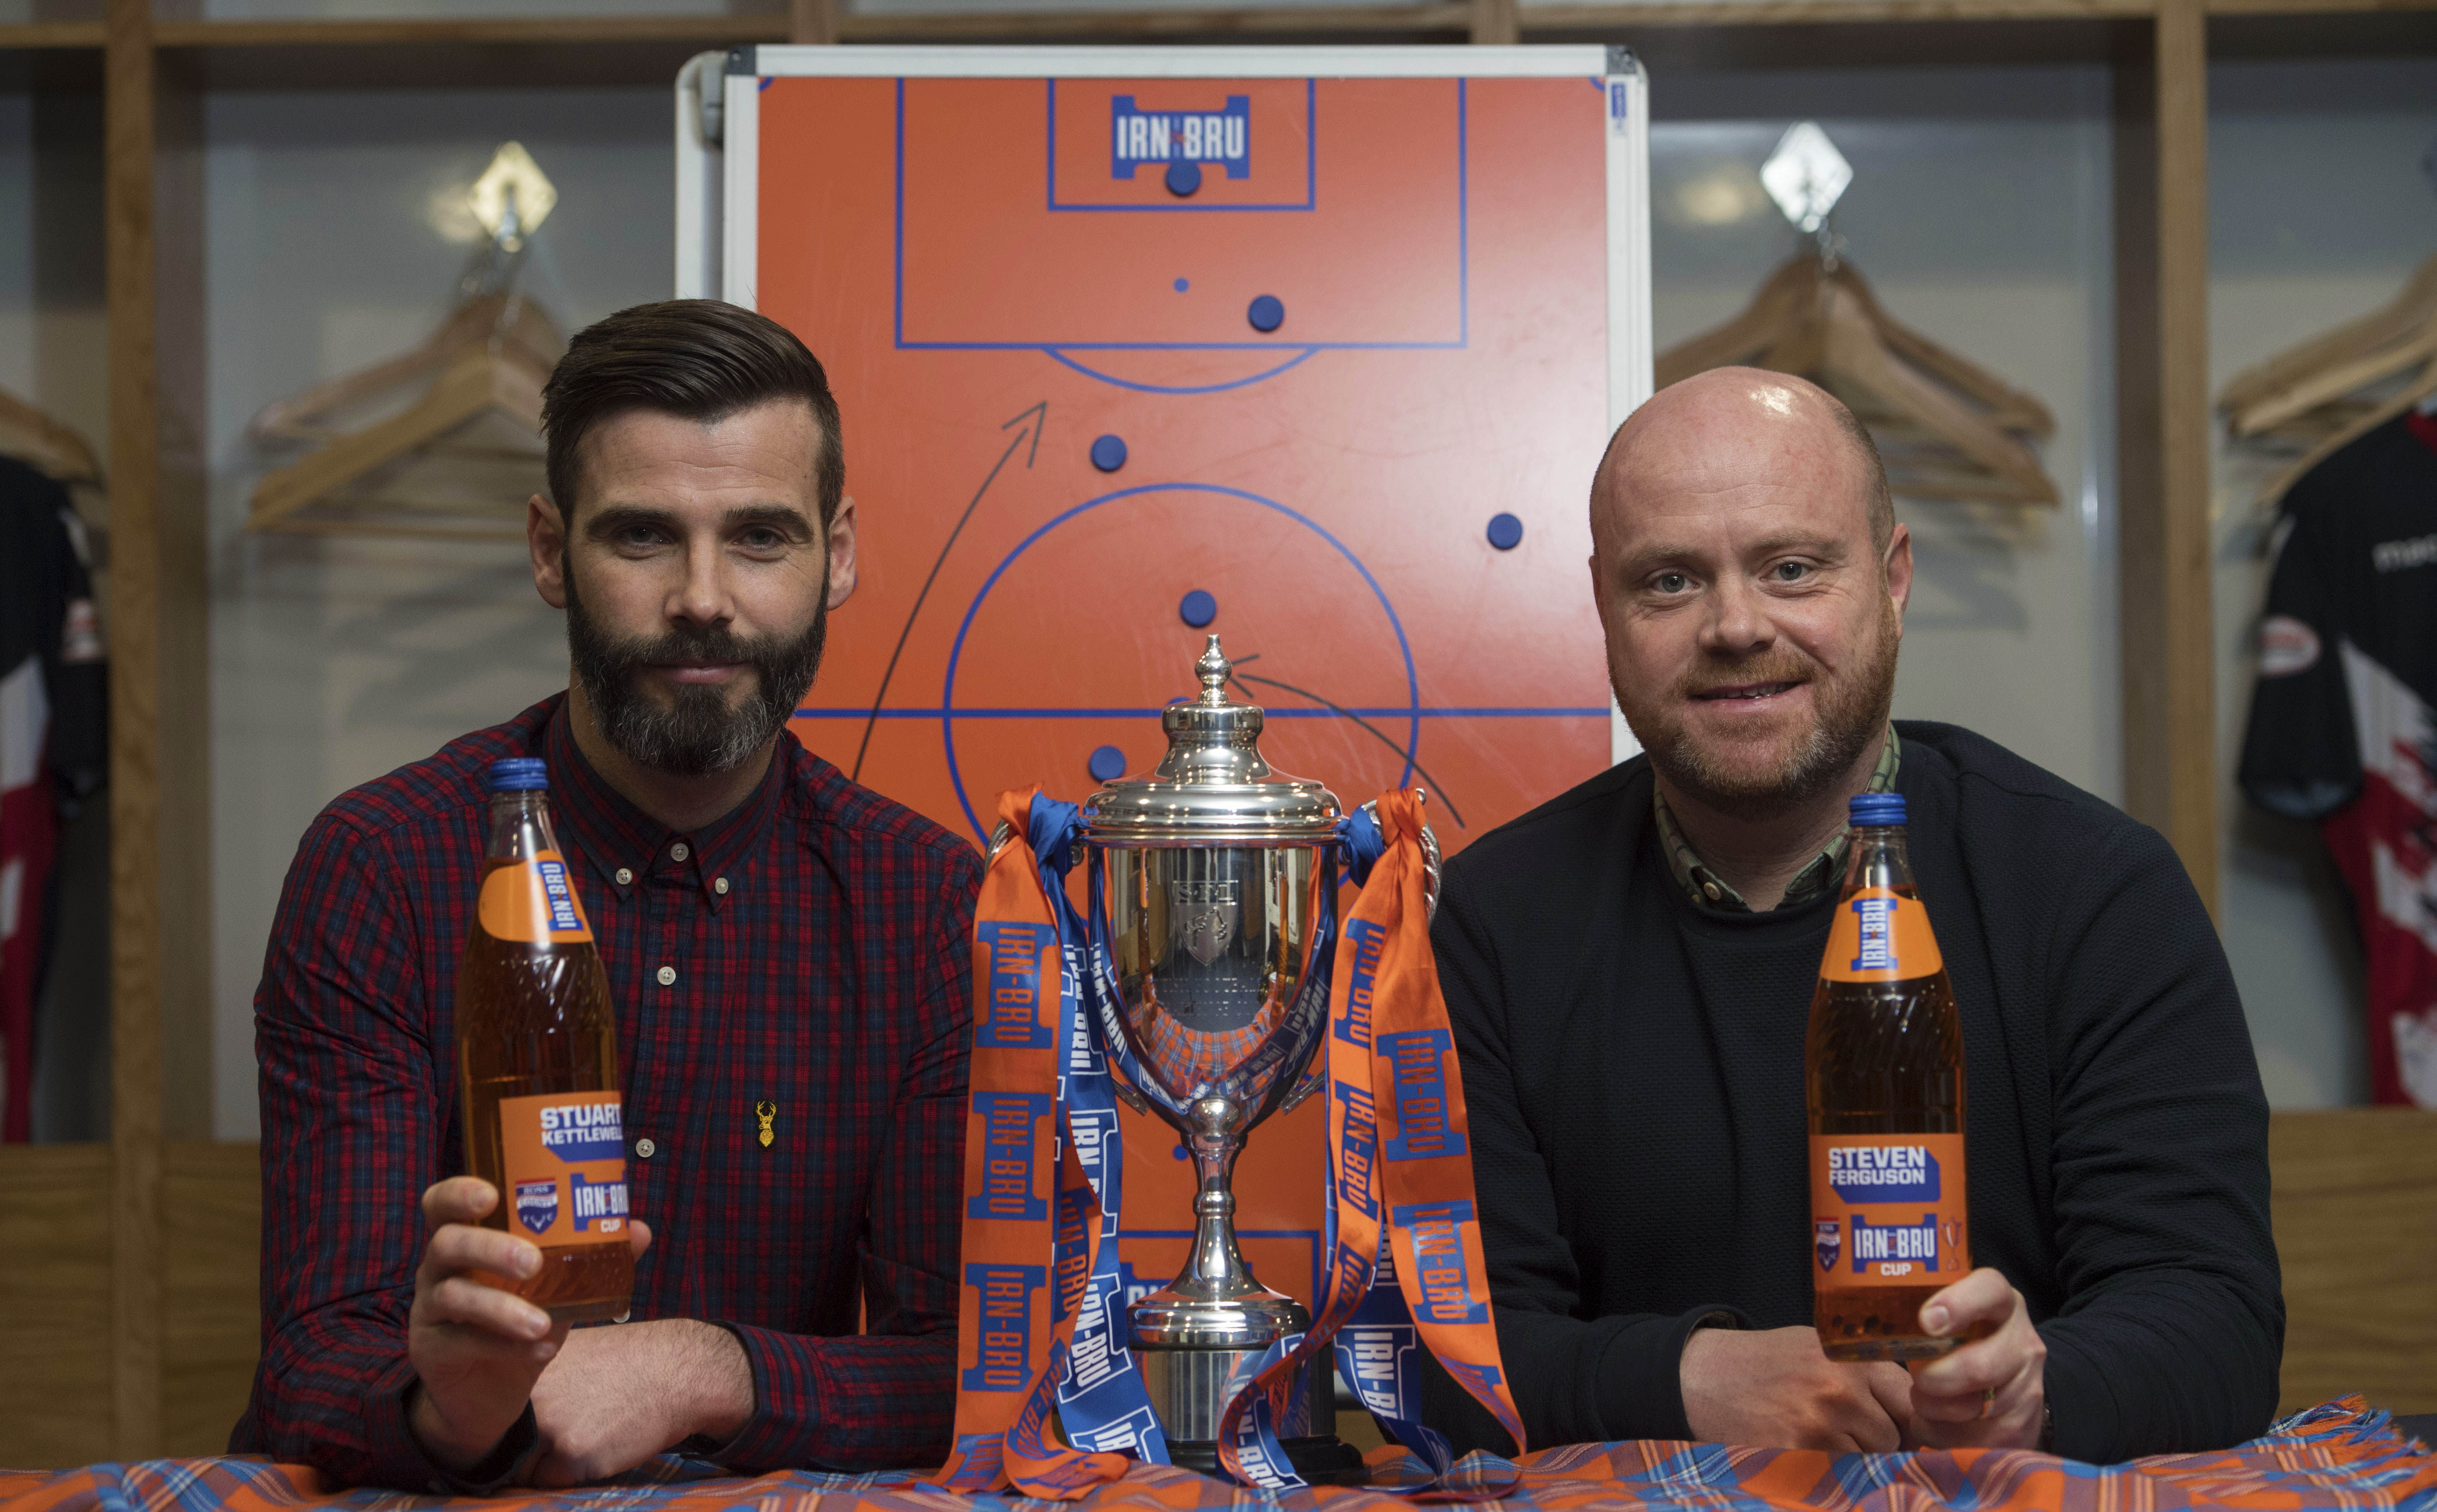 Stuart Kettlewell and Steven Ferguson lead Ross County into the IRN-BRU Cup final tomorrow.